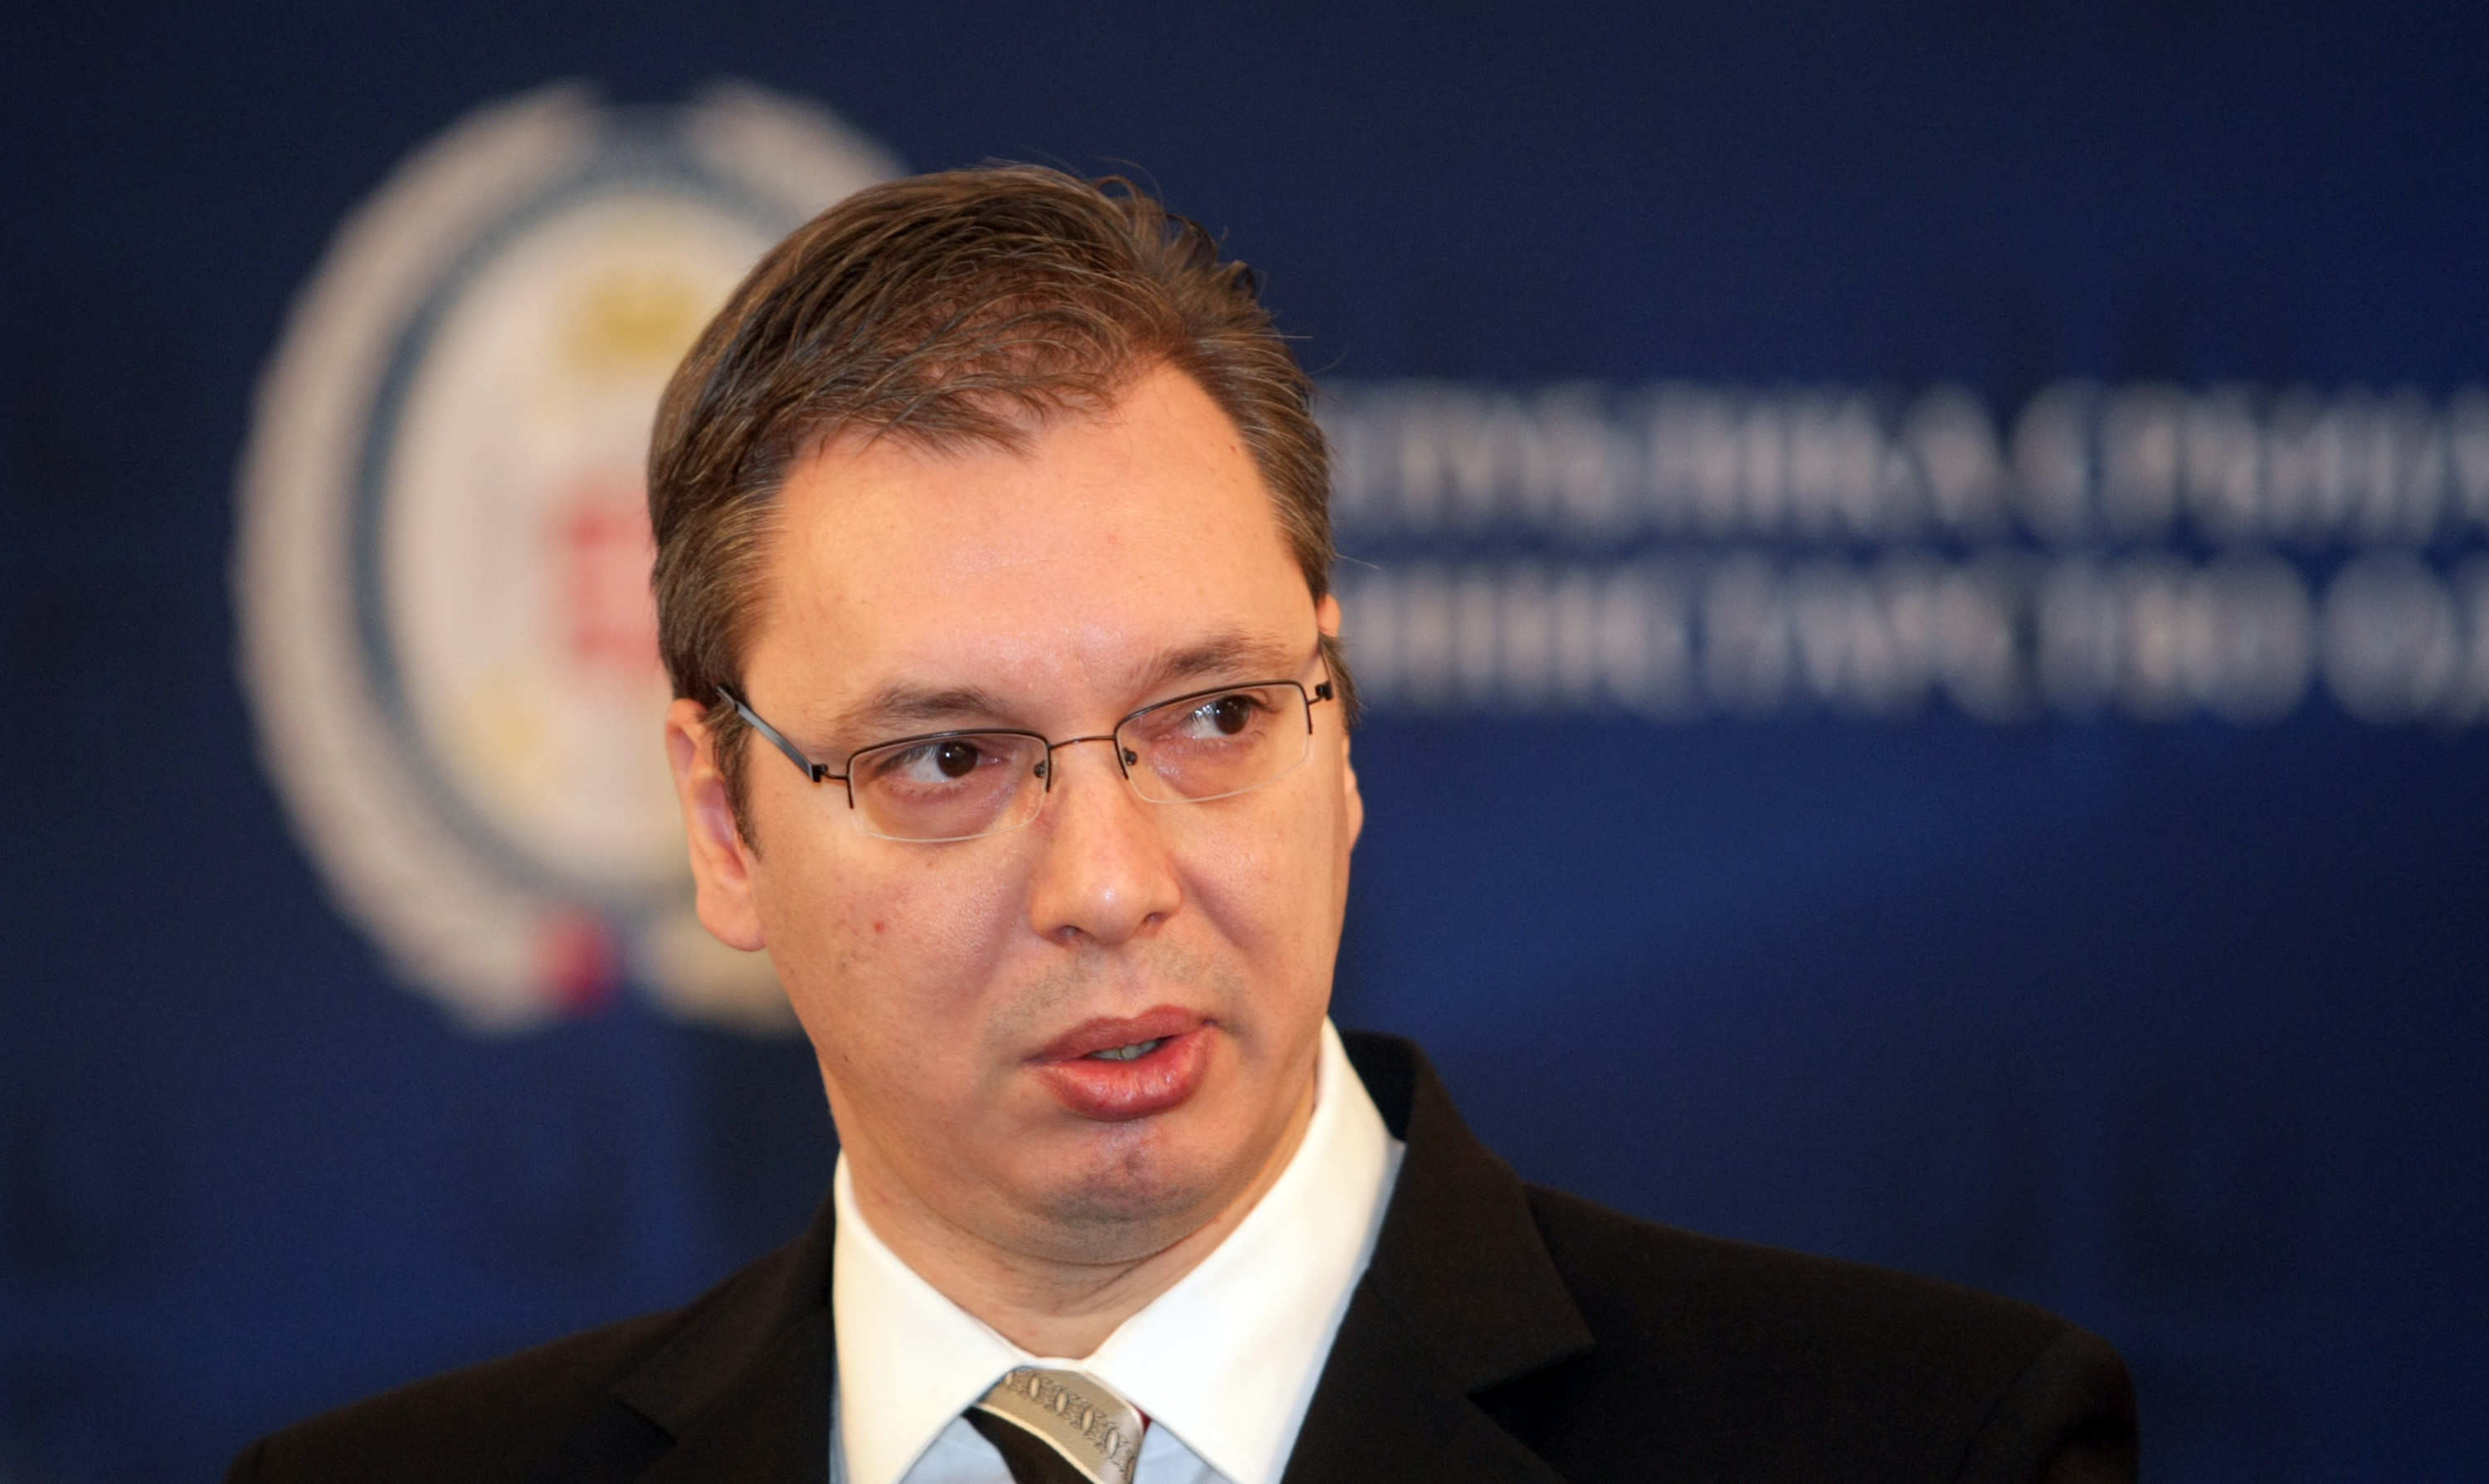 Serbia tired of patience, Vucic says